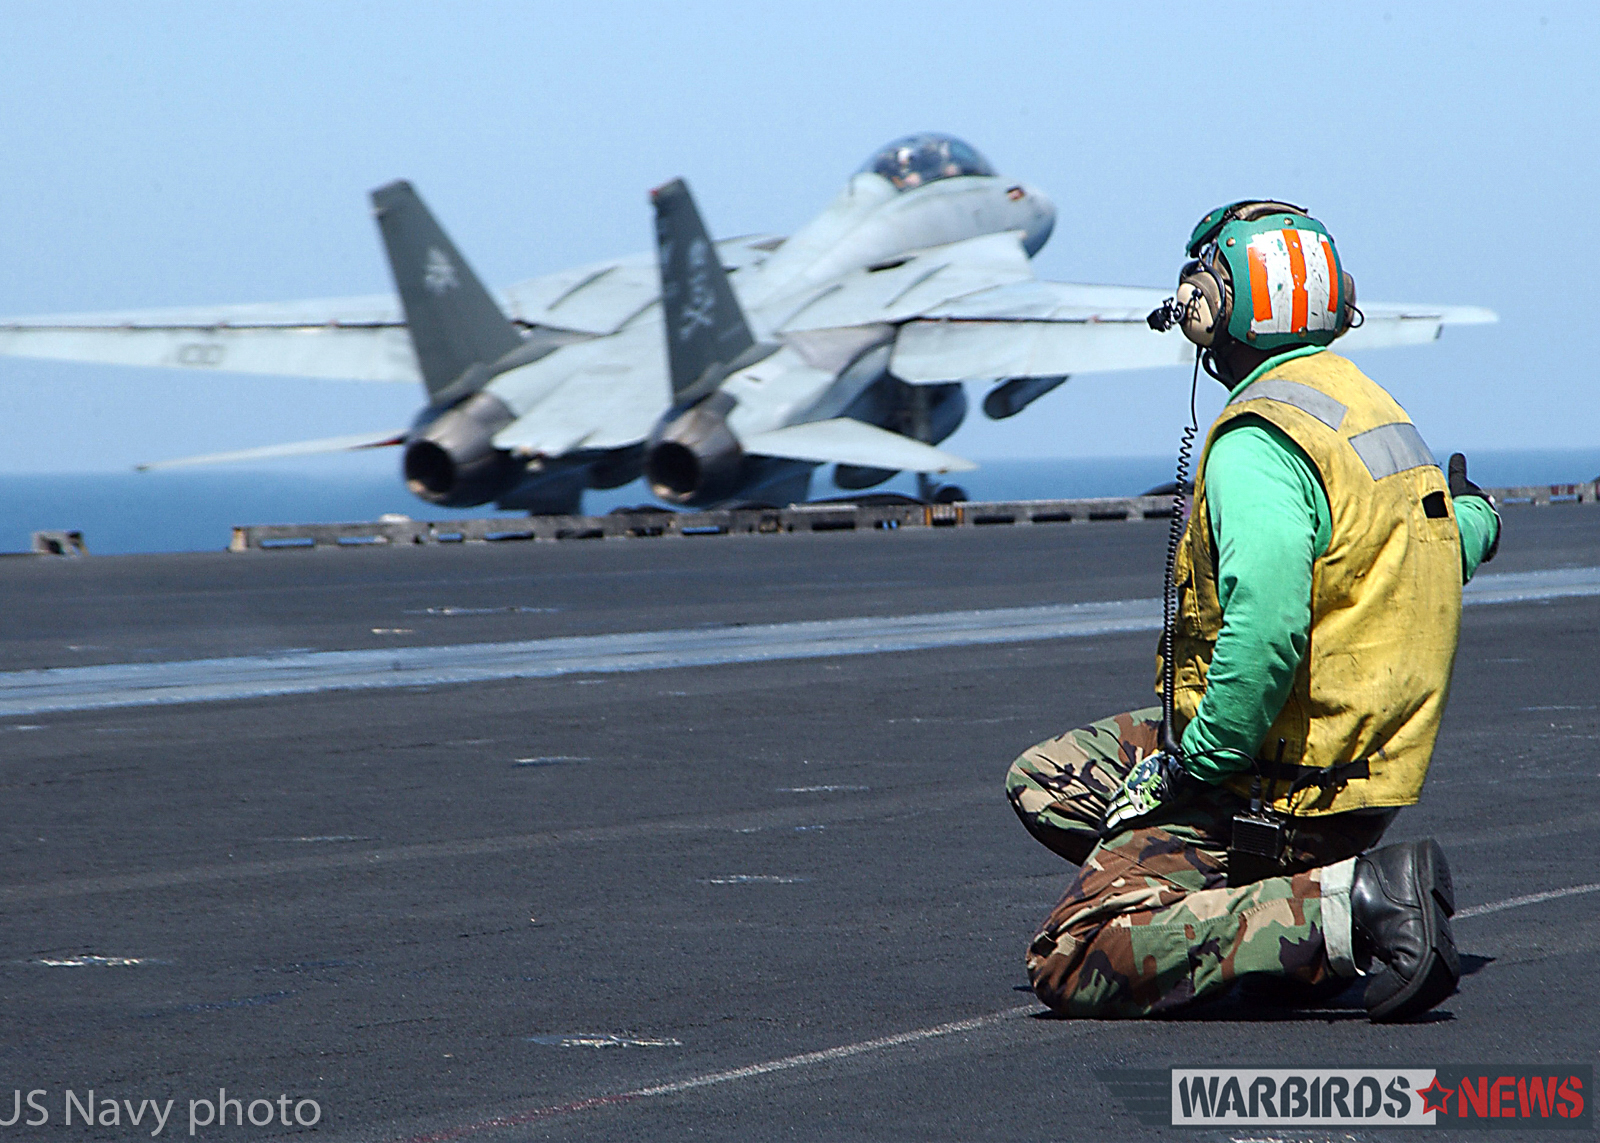 """At sea aboard USS George Washington (CVN 73) Sep. 8, 2002 -- Aviation Boatswain's Mate 2nd Class Michael Keys from Orlando, Fla., watches an F-14 """"Tomcat,"""" assigned to the """"Jolly Rogers"""" of Fighter Squadron One Zero Three (VF-103) gain altitude after launch. Washington is homeported in Norfolk, Va., and is on a six-month deployment conducting combat missions in support of Operation Southern Watch. U.S. Navy photo by Photographer's Mate Airman Jessica Davis. (RELEASED)"""